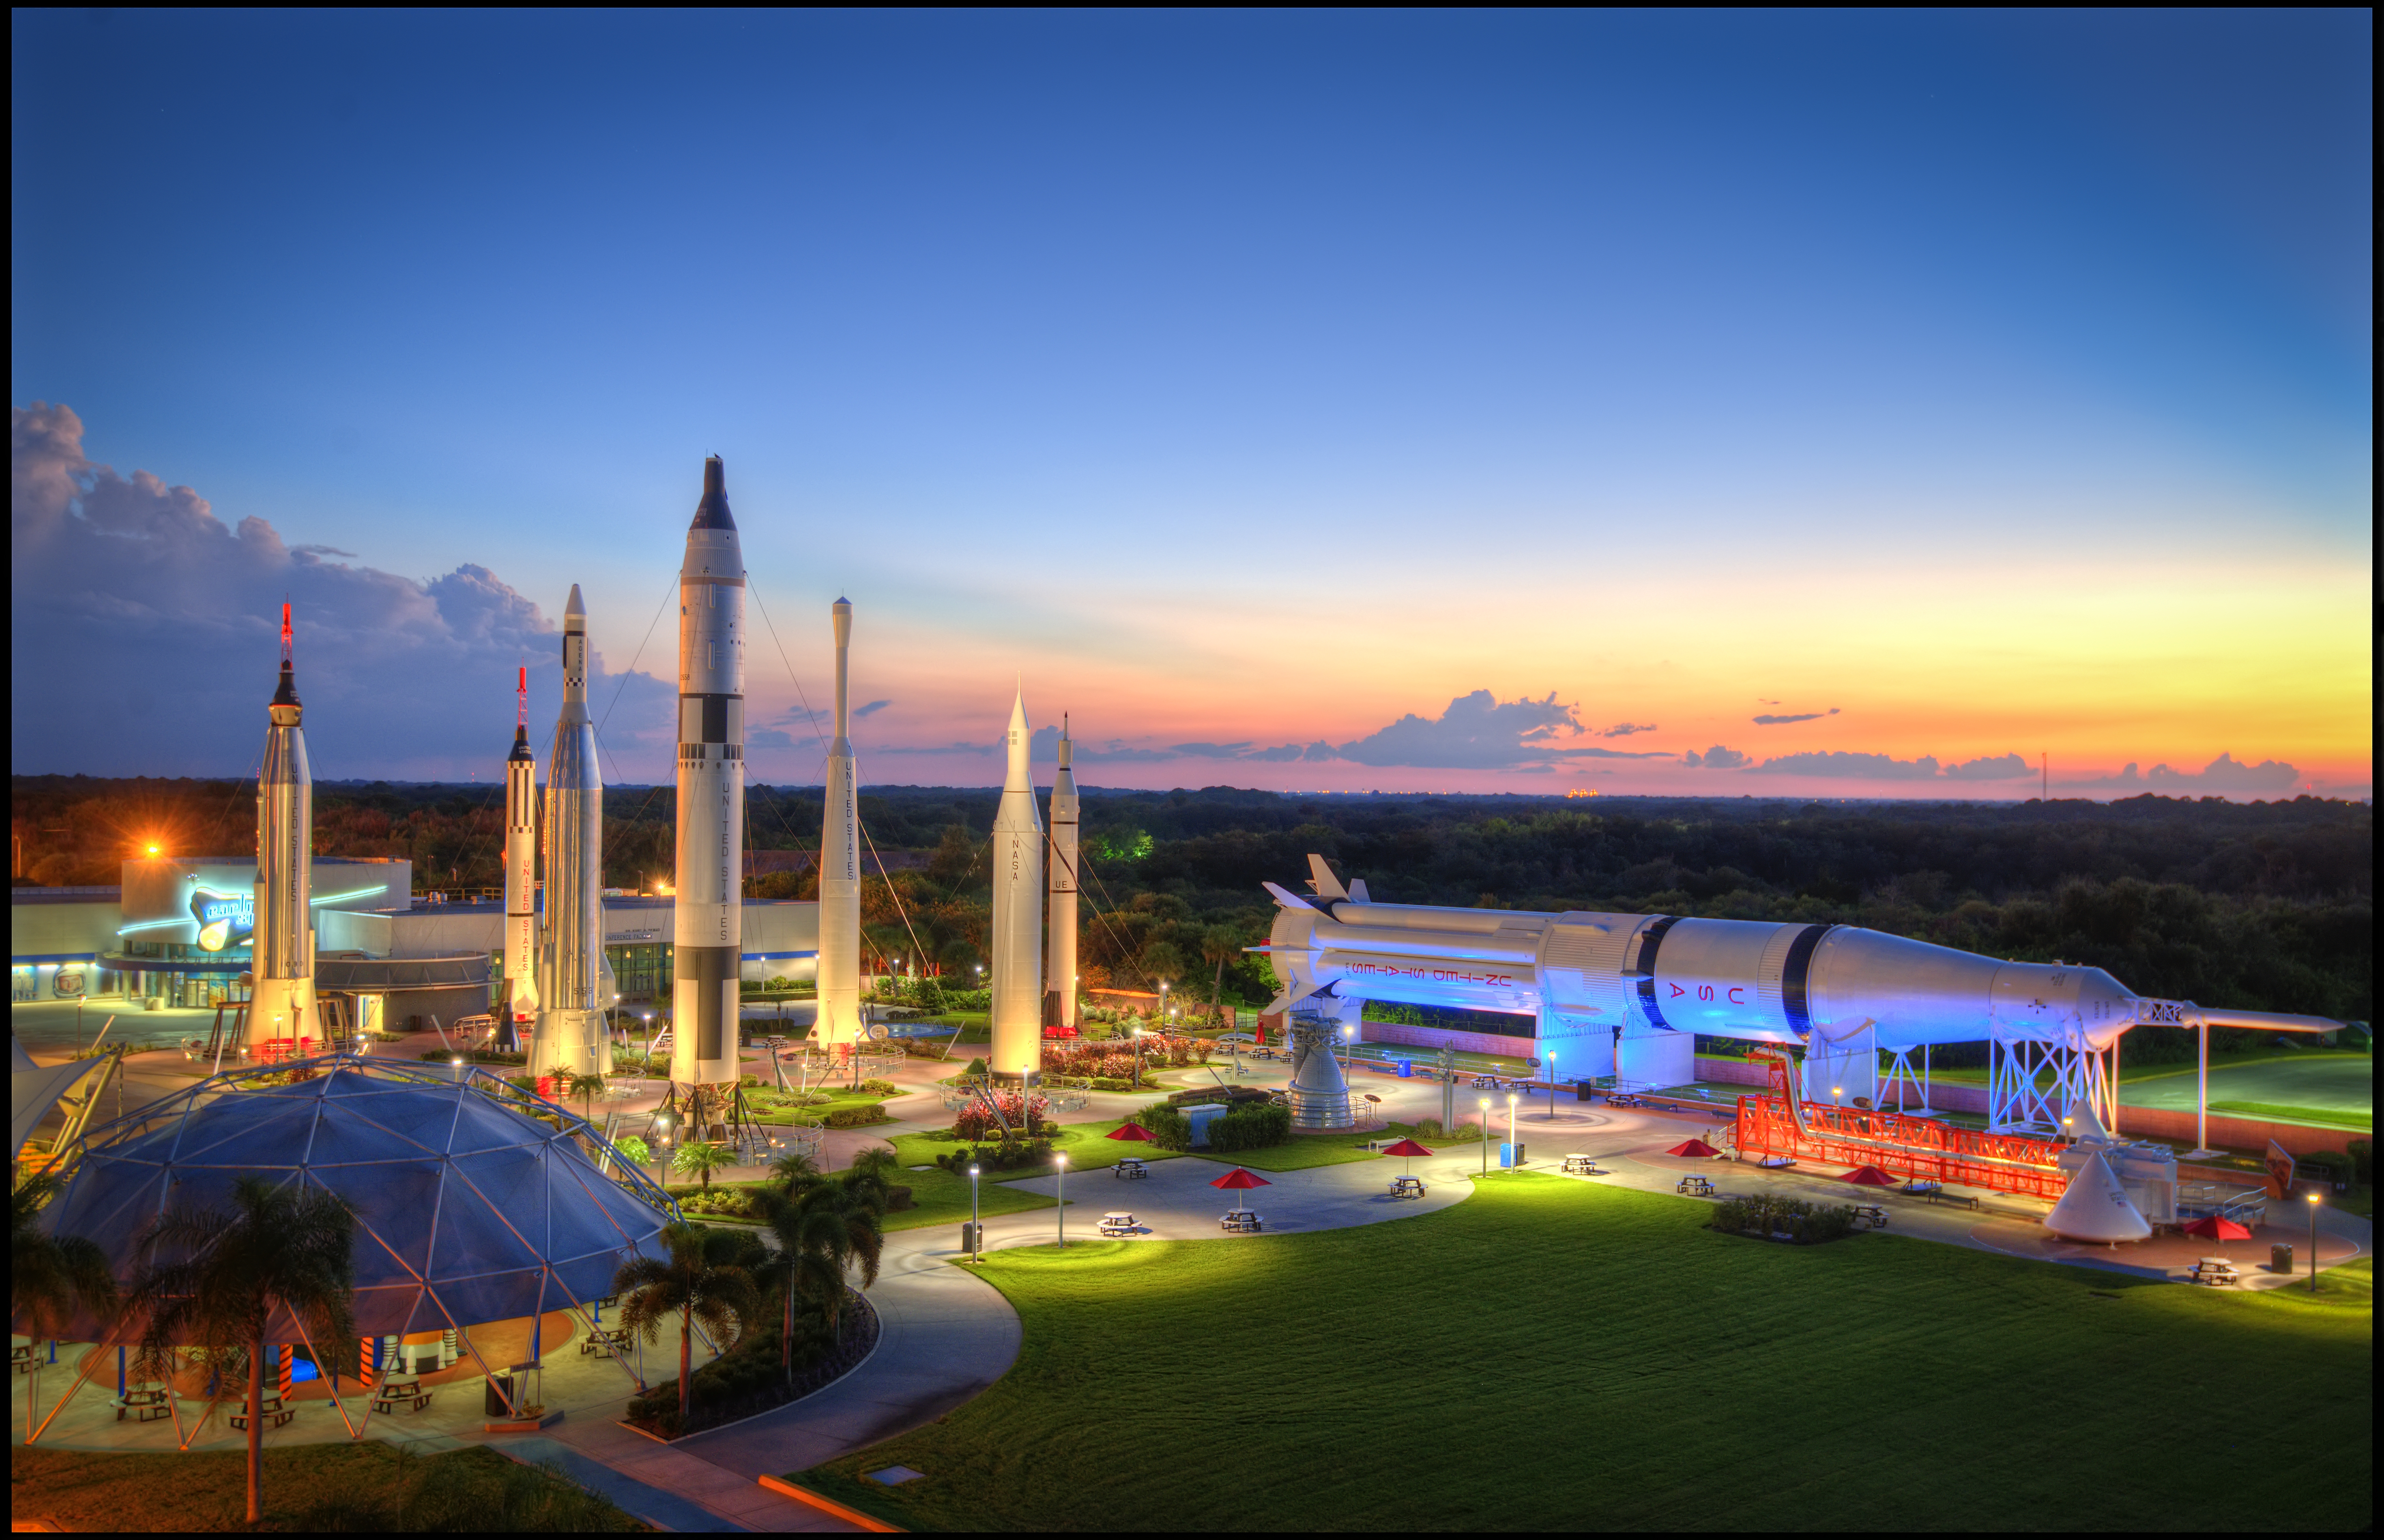 Kennedy Space Center 10 Things To Know About The Kennedy Space Center Before You